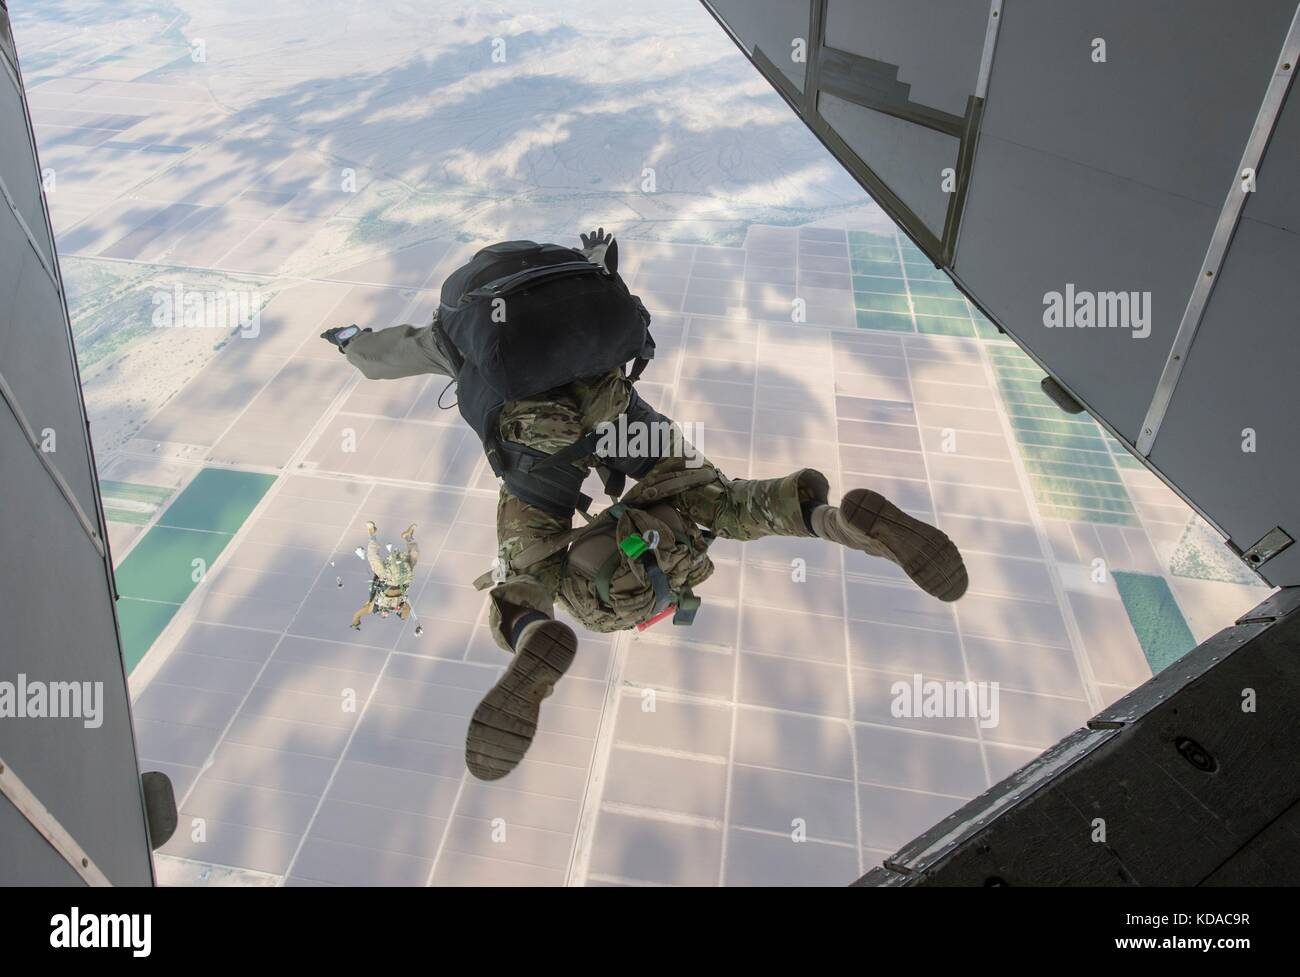 U.S. Navy SEALS jump out of a SC-7 Skyvan skydiving aircraft during free-fall training over the Skydive Arizona - Stock Image